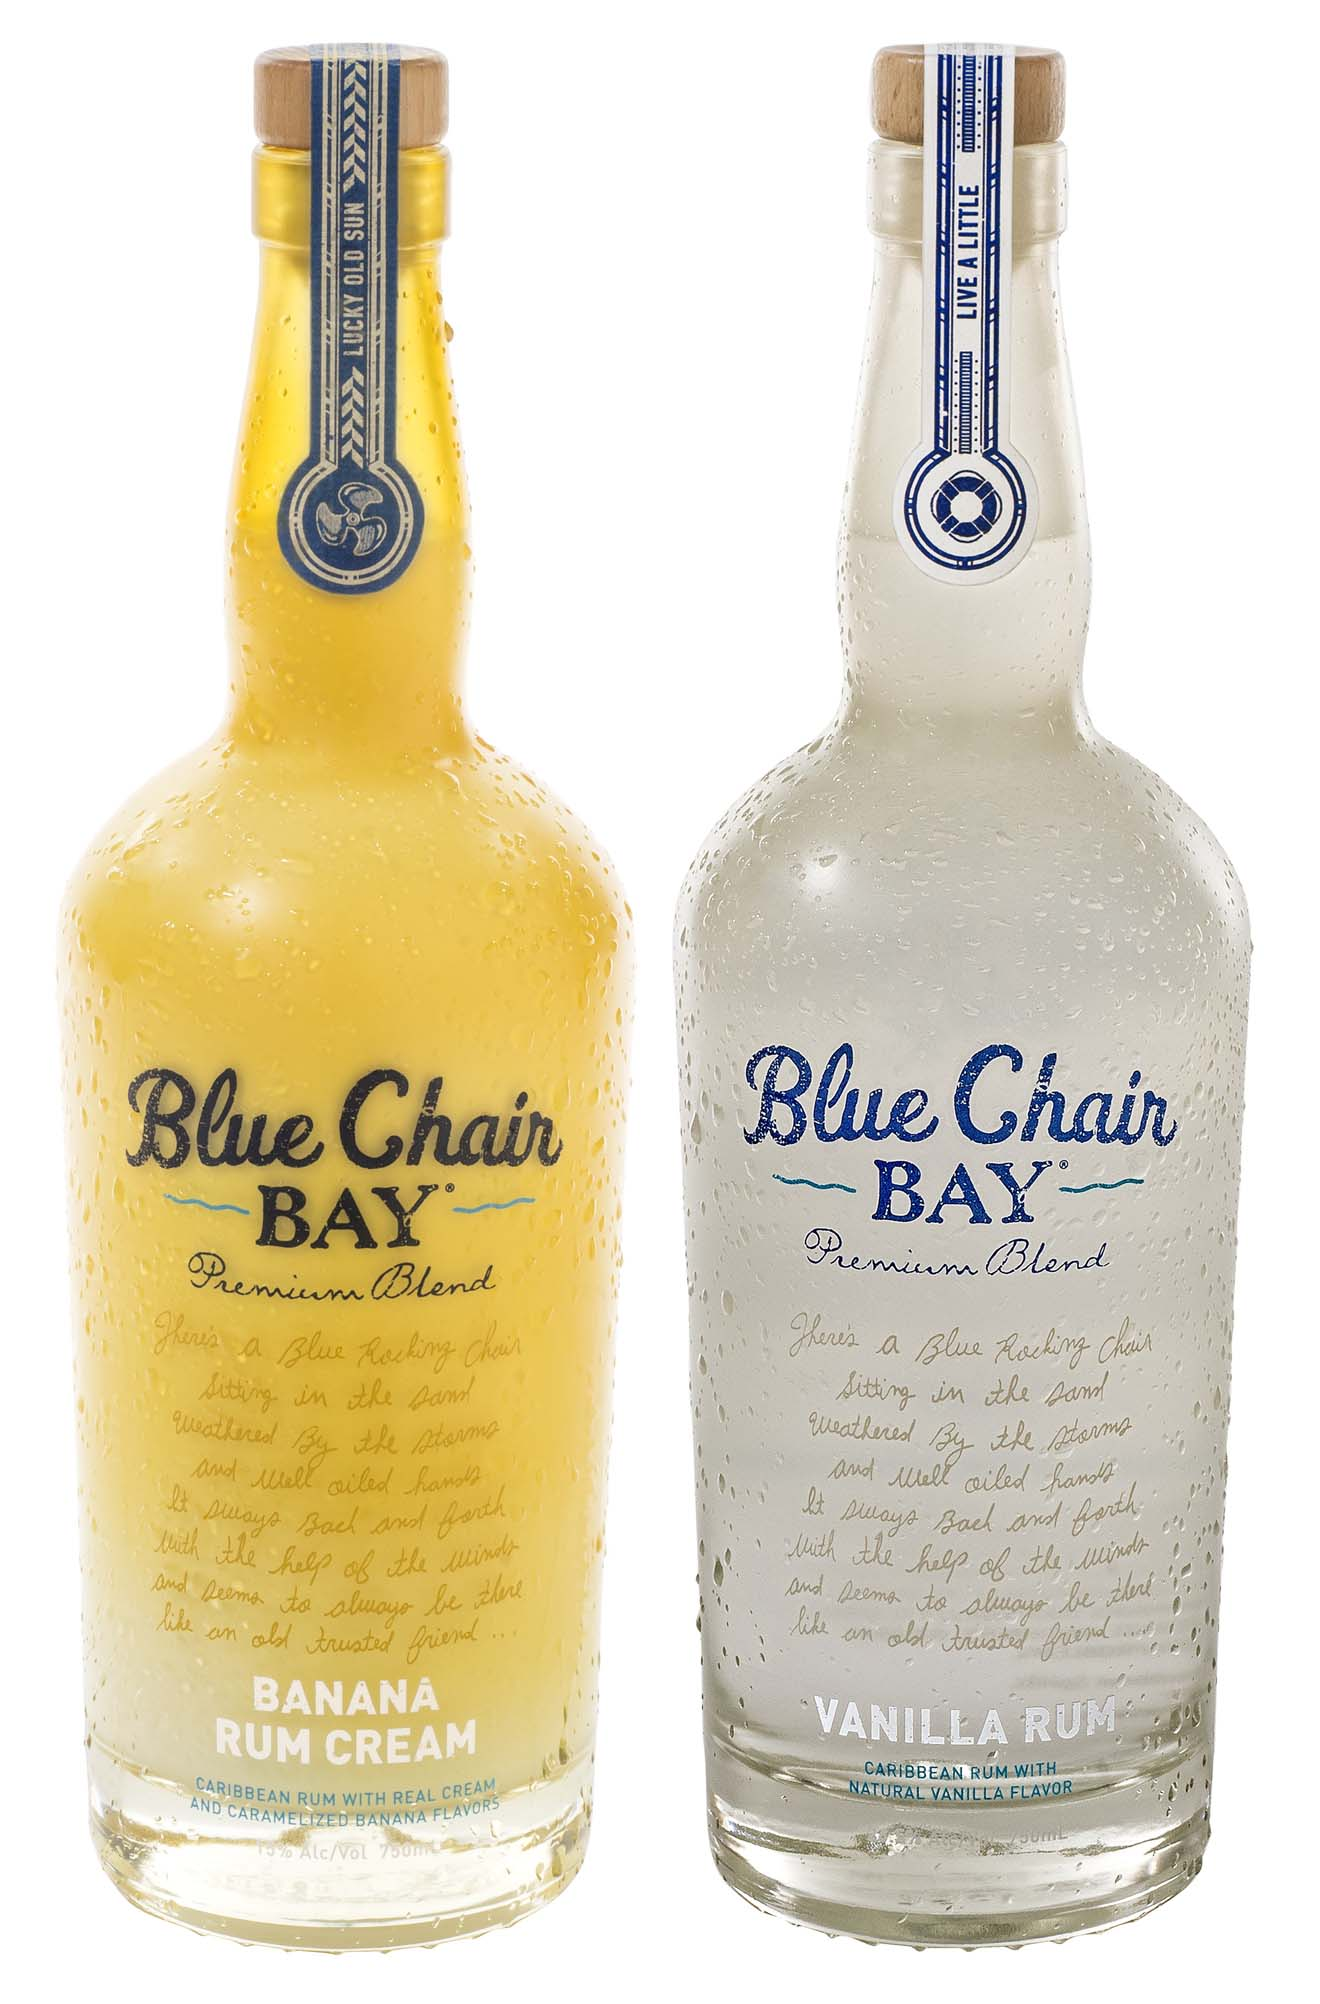 Blue Chair Bay Coconut Rum Kenny Chesney 39s Blue Chair Bay Rum Adds New Vanilla And